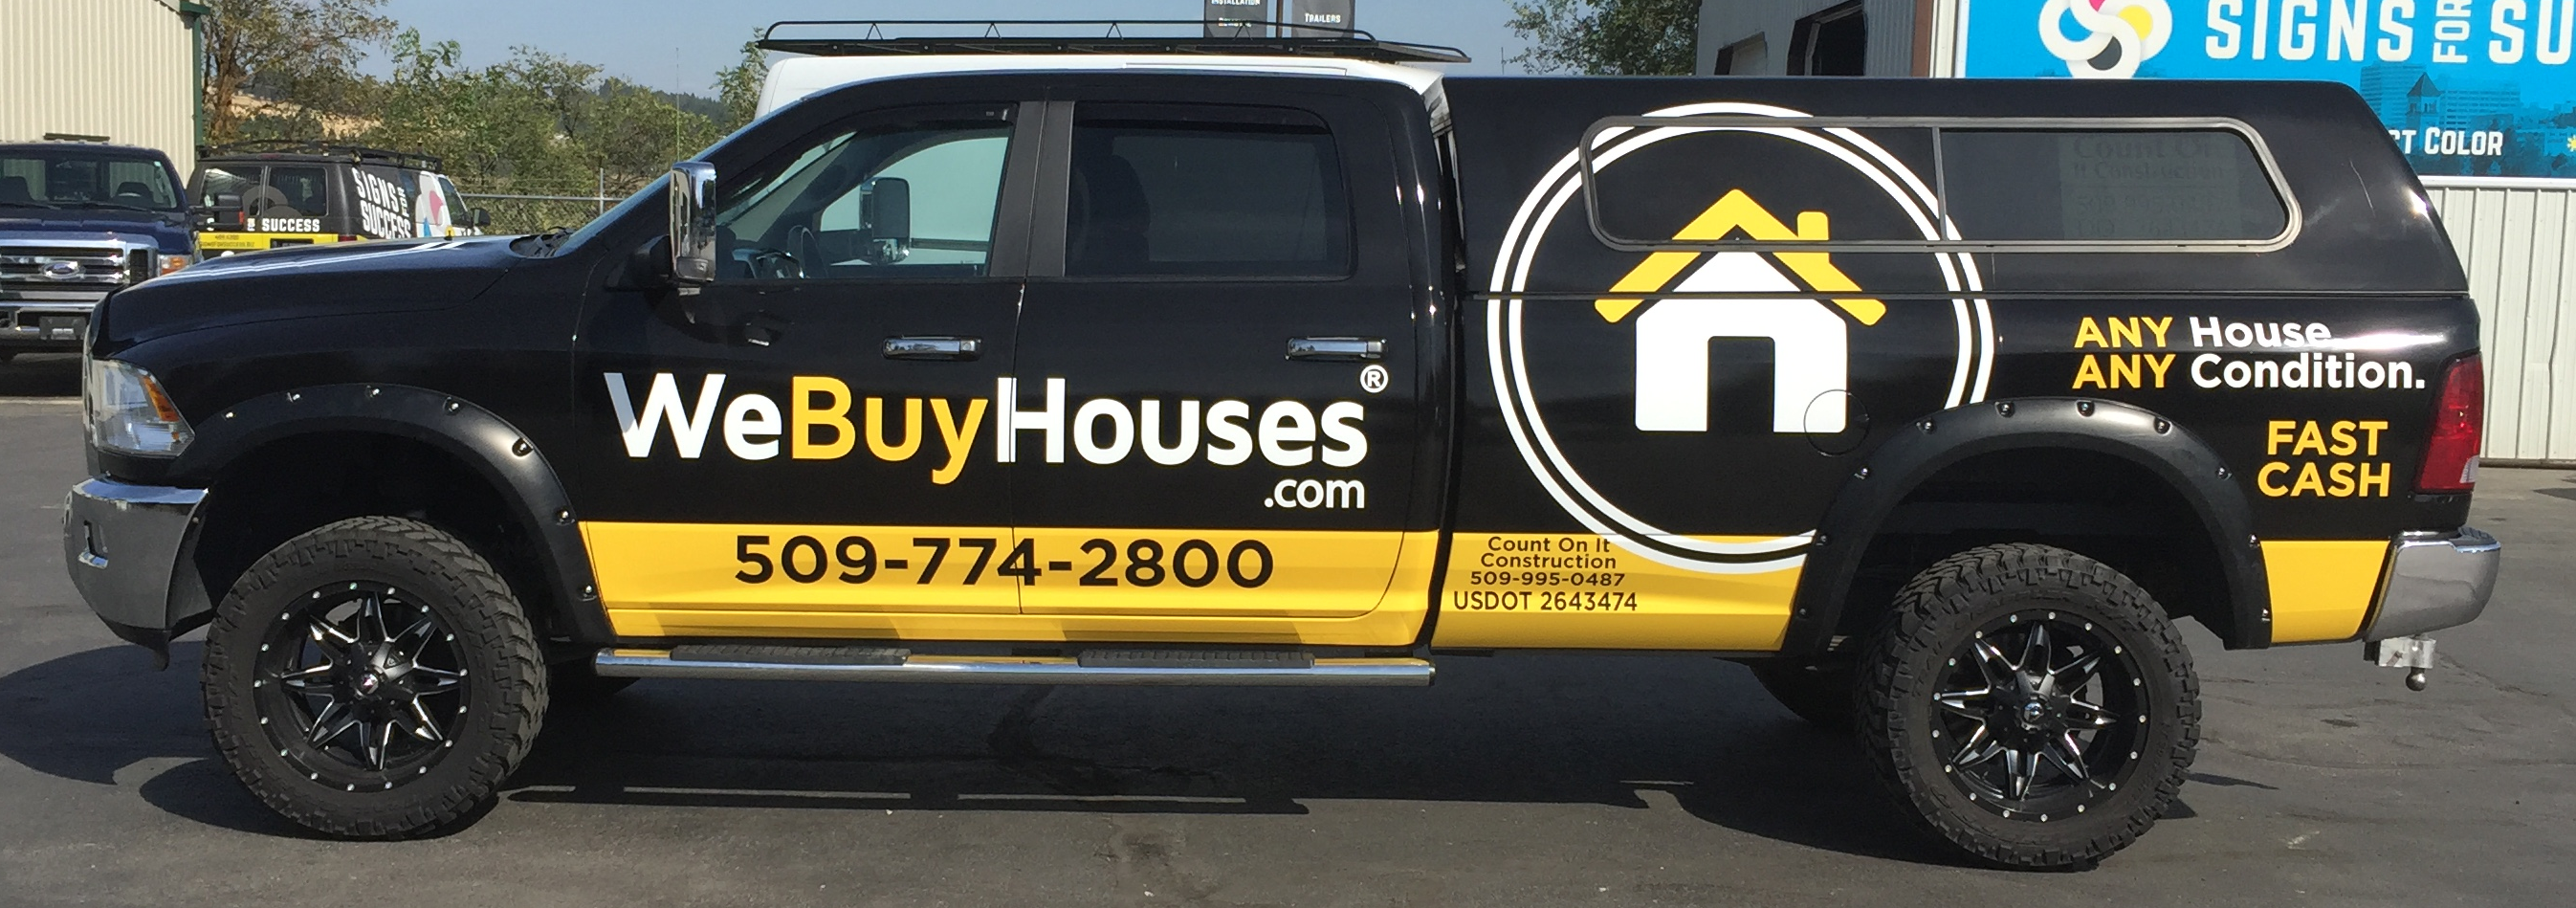 Car & Truck Wraps | We Buy Houses® Marketing Portal